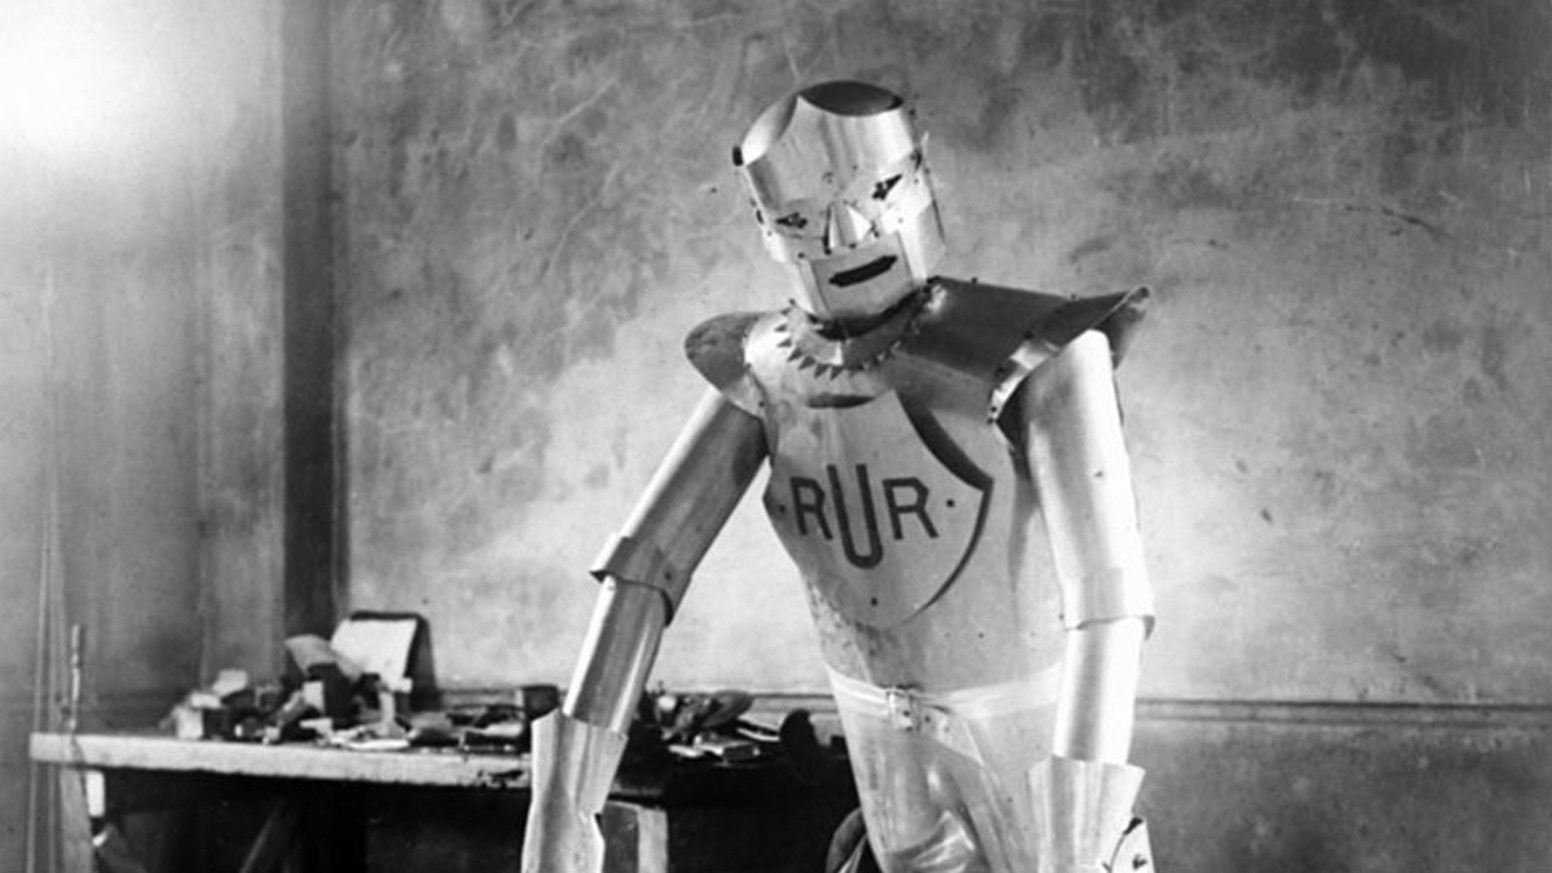 As the UK's first robot, Eric has a unique place in history. With your help the Science Museum is bringing Eric back to life.